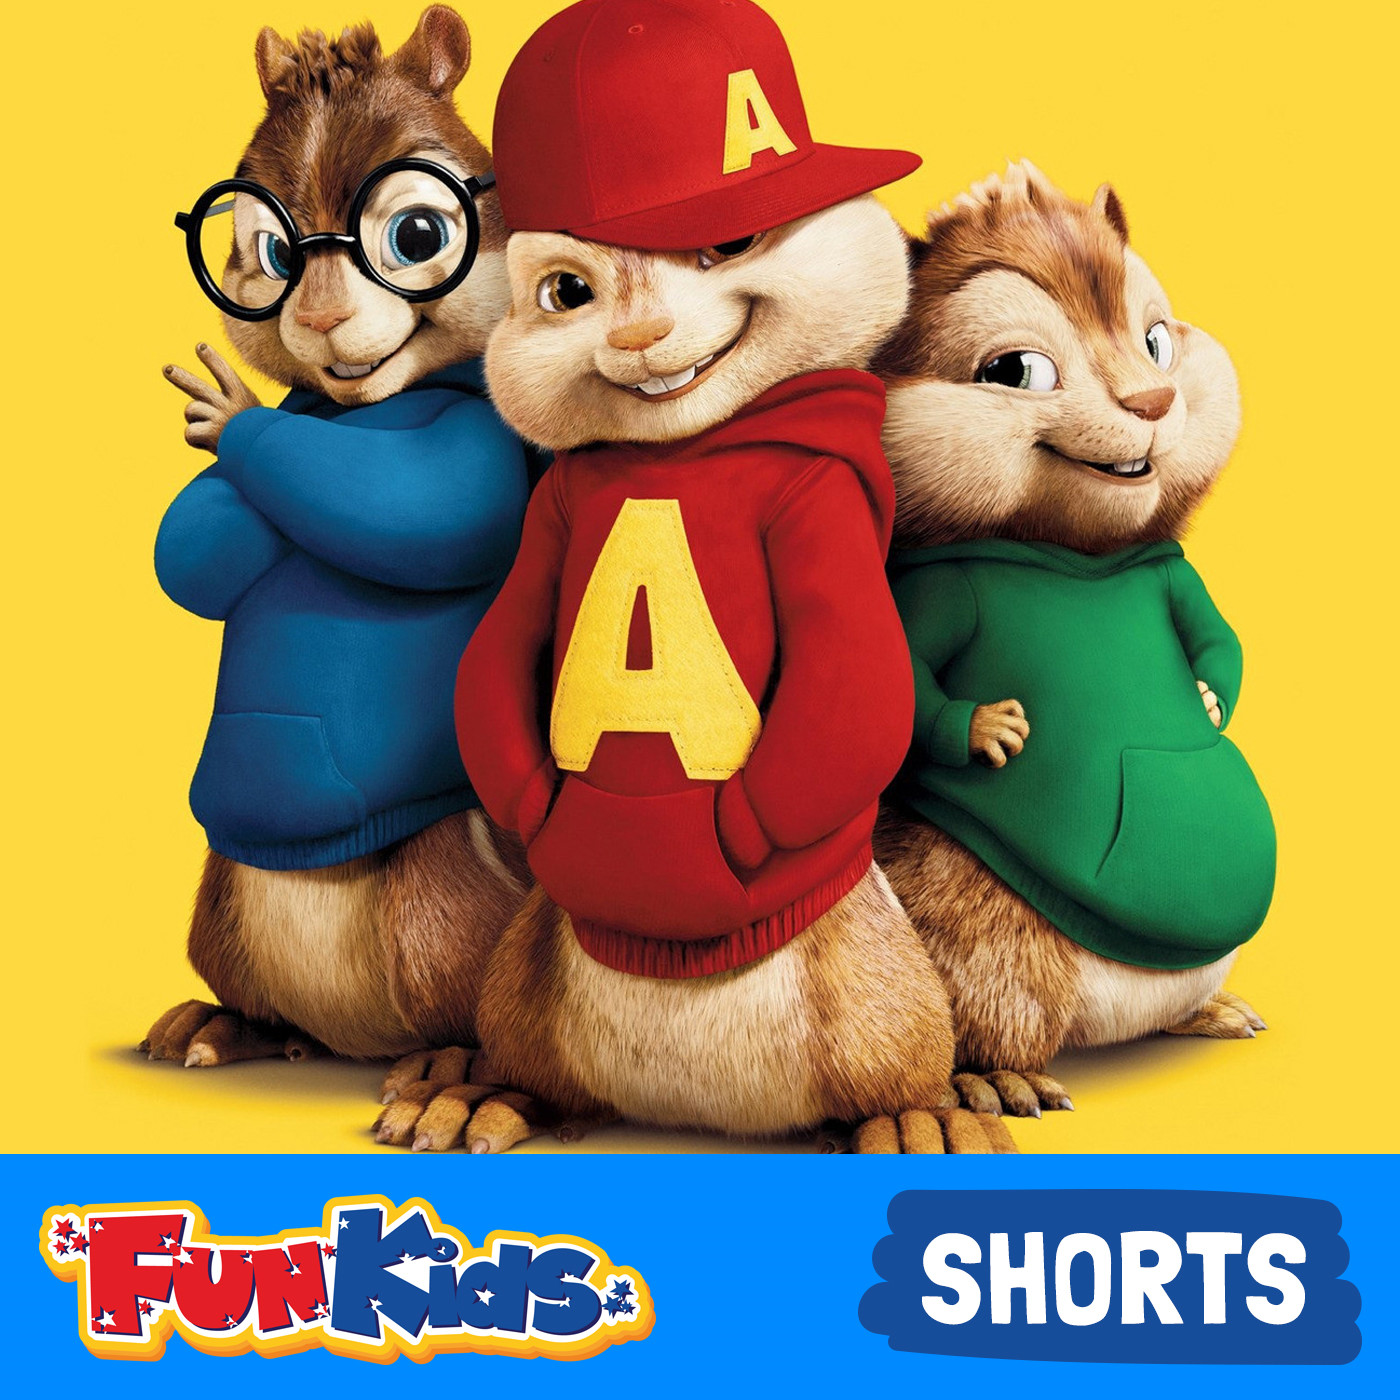 <![CDATA[Alvin and the Chipmunks on Fun Kids]]>